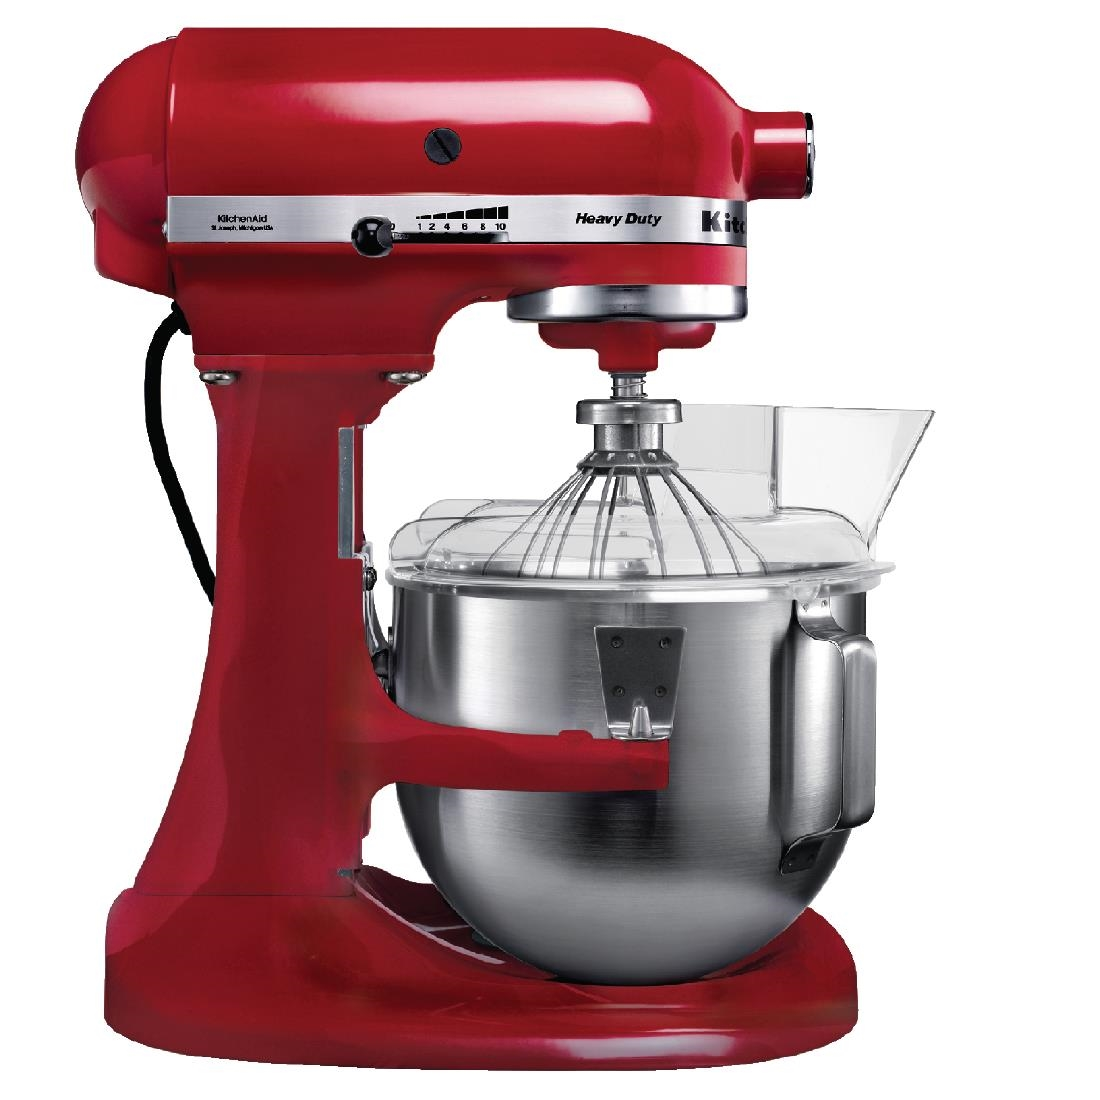 ... Kitchenaid K5 Commercial Mixer Red